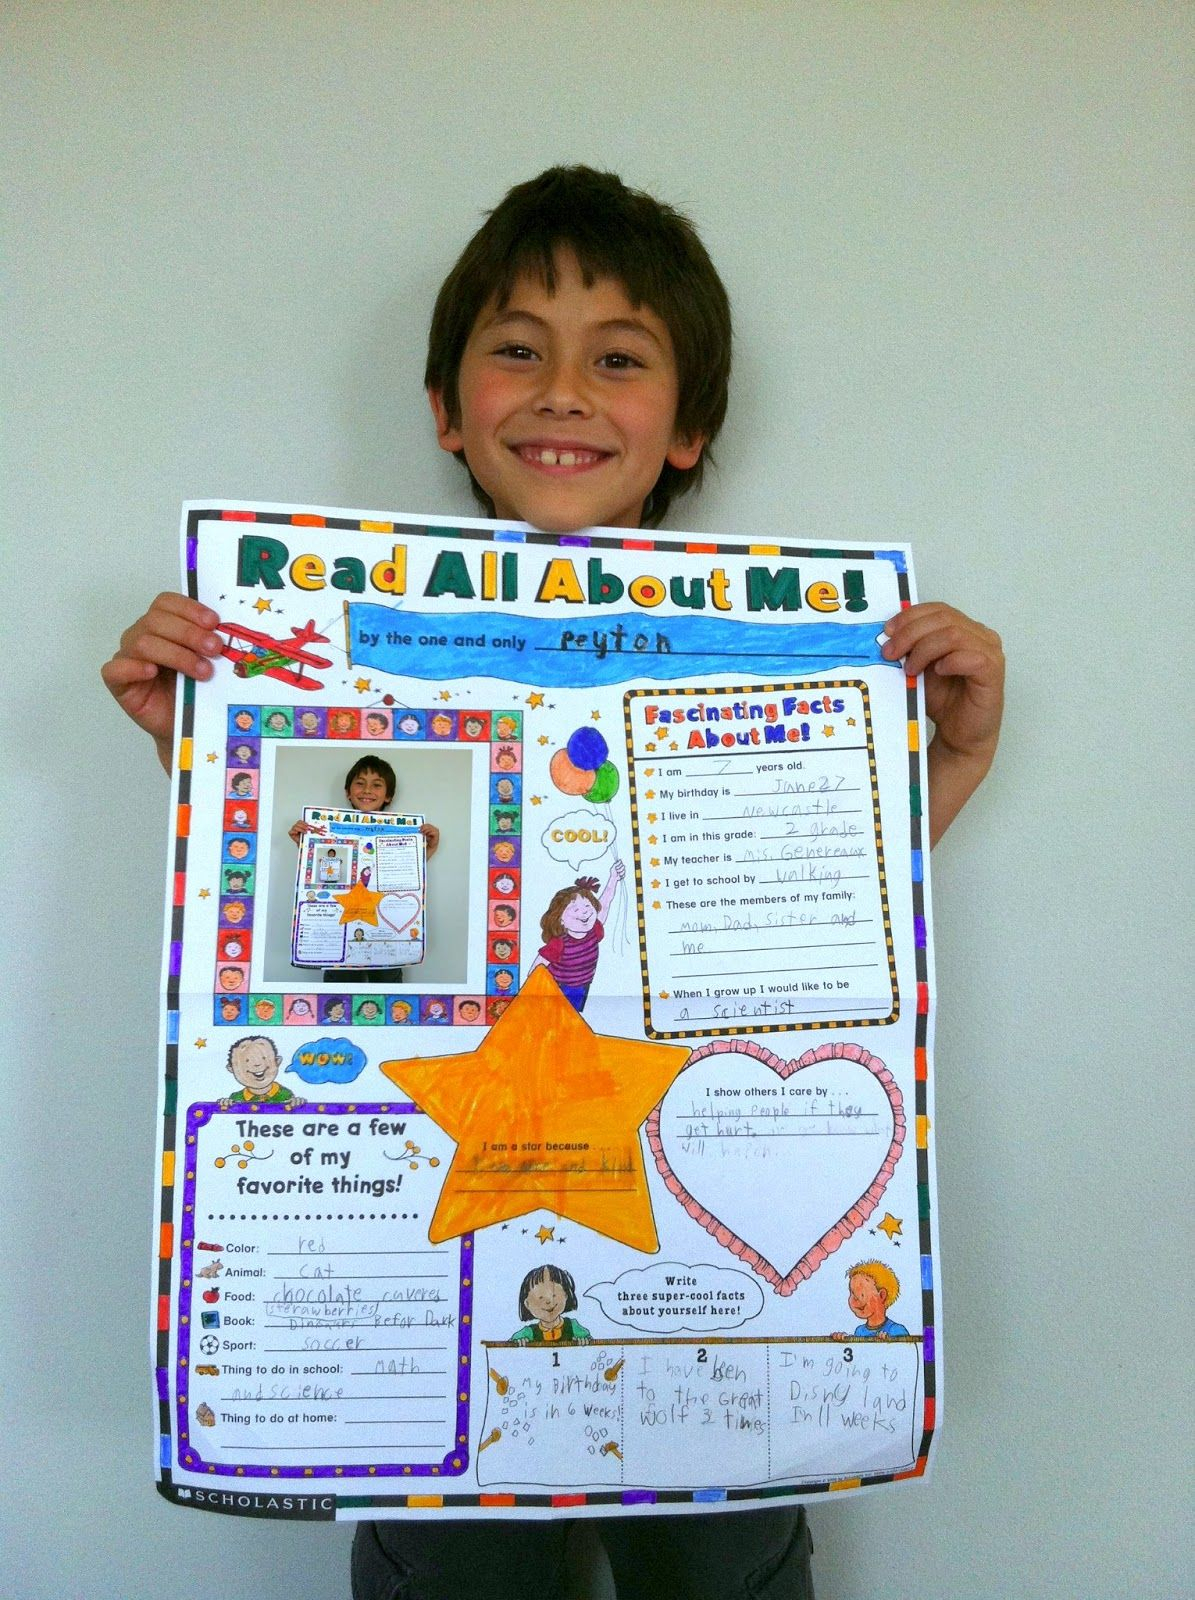 10 Cute School Project Ideas For Kids the contemplative creative school project about me poster